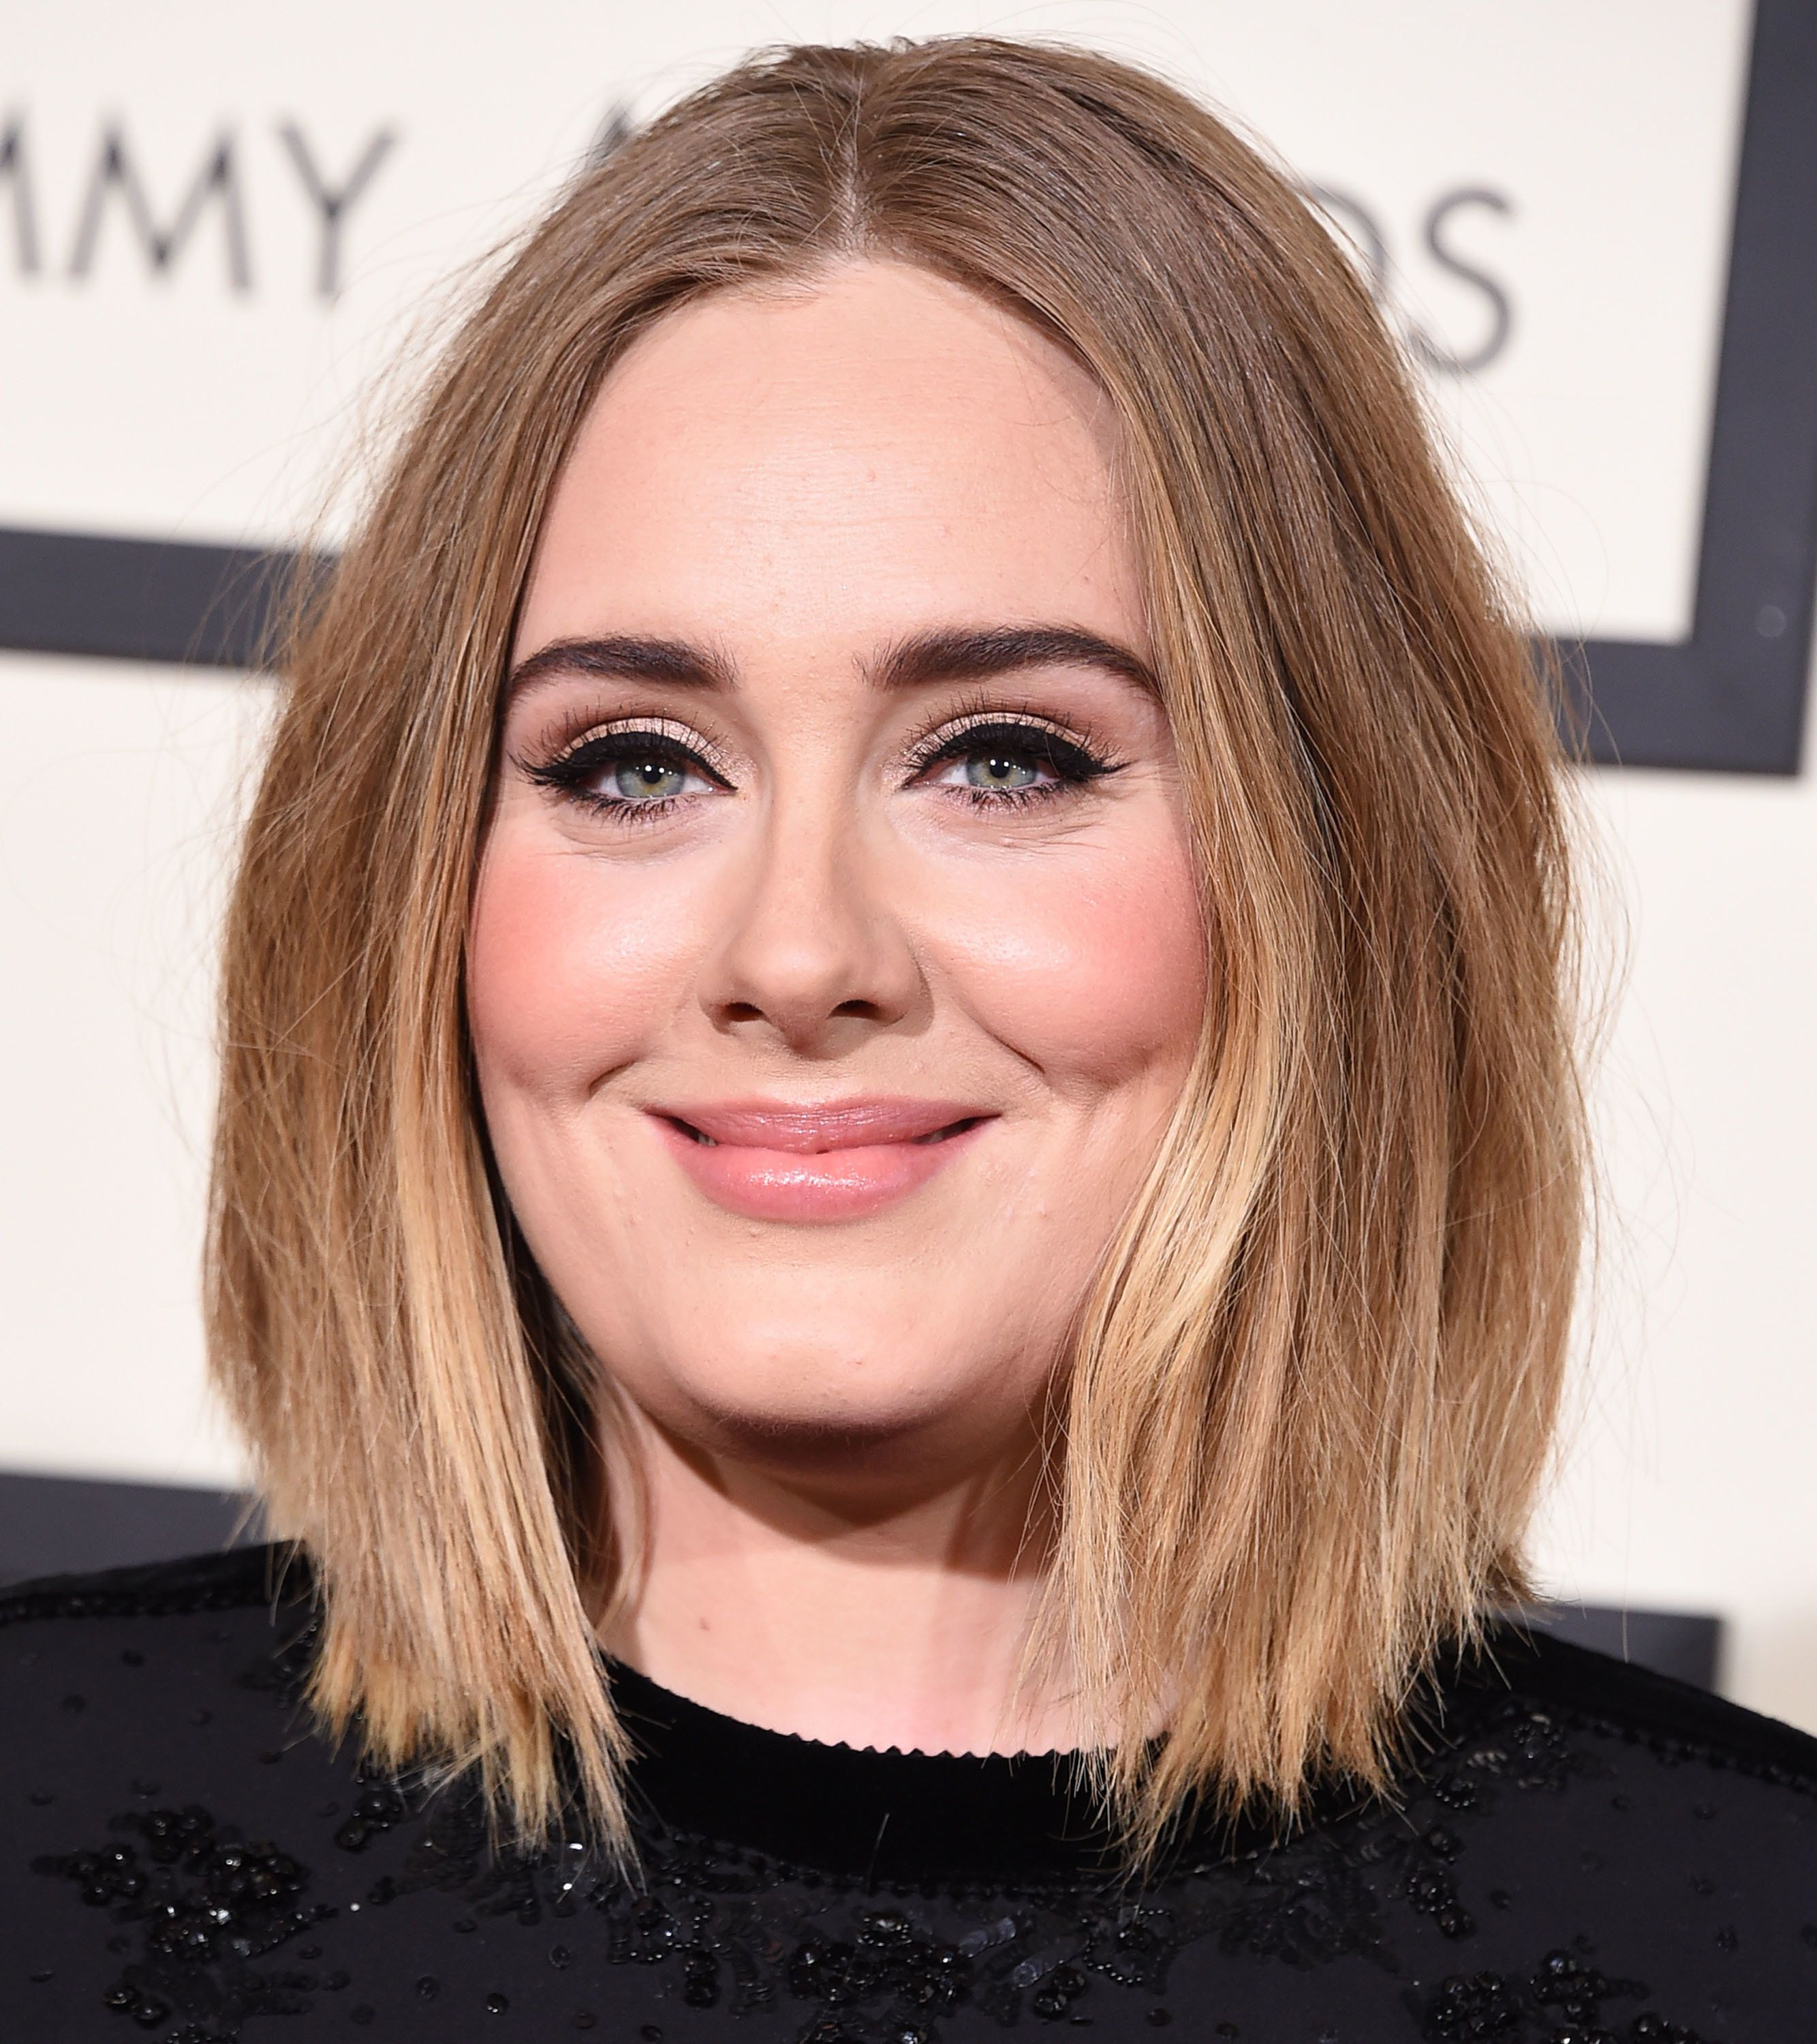 LOS ANGELES, CA - FEBRUARY 15:  Adele arrives at the The 58th GRAMMY Awards at Staples Center on February 15, 2016 in Los Angeles City.  (Photo by Steve Granitz/WireImage)